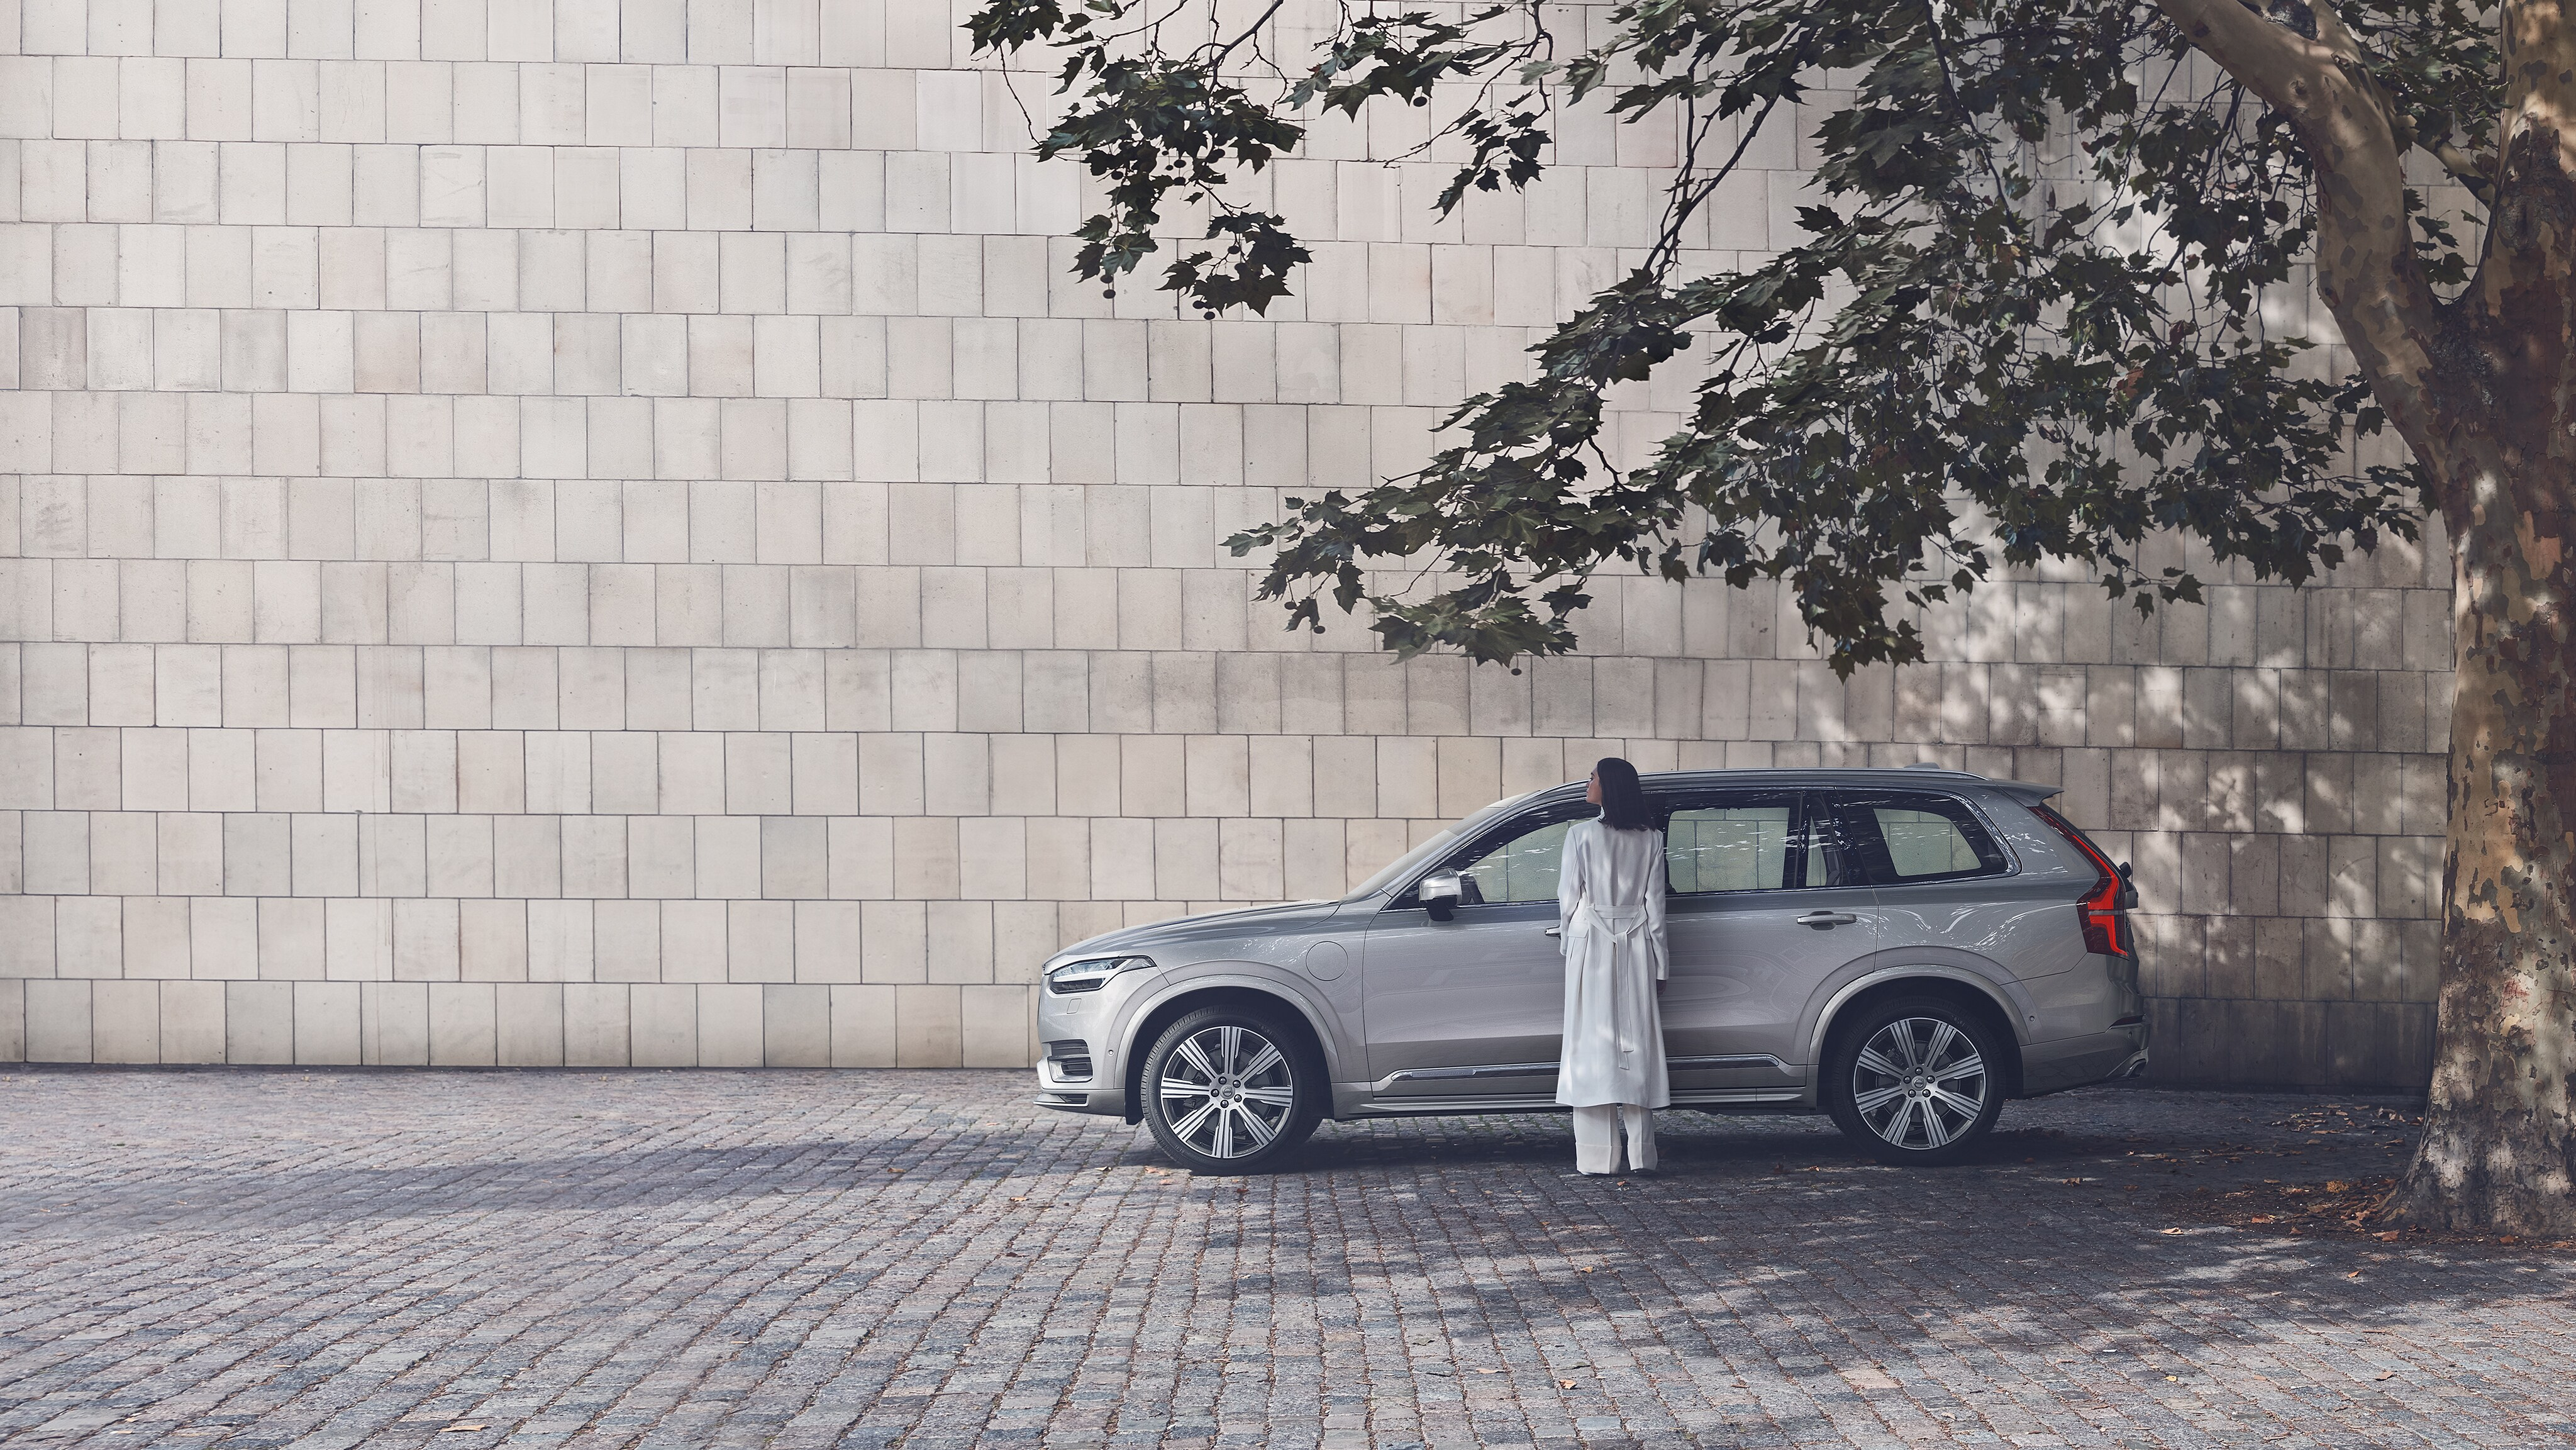 A Woman Stands By New Volvo Xc90 That S Parked In The Shade